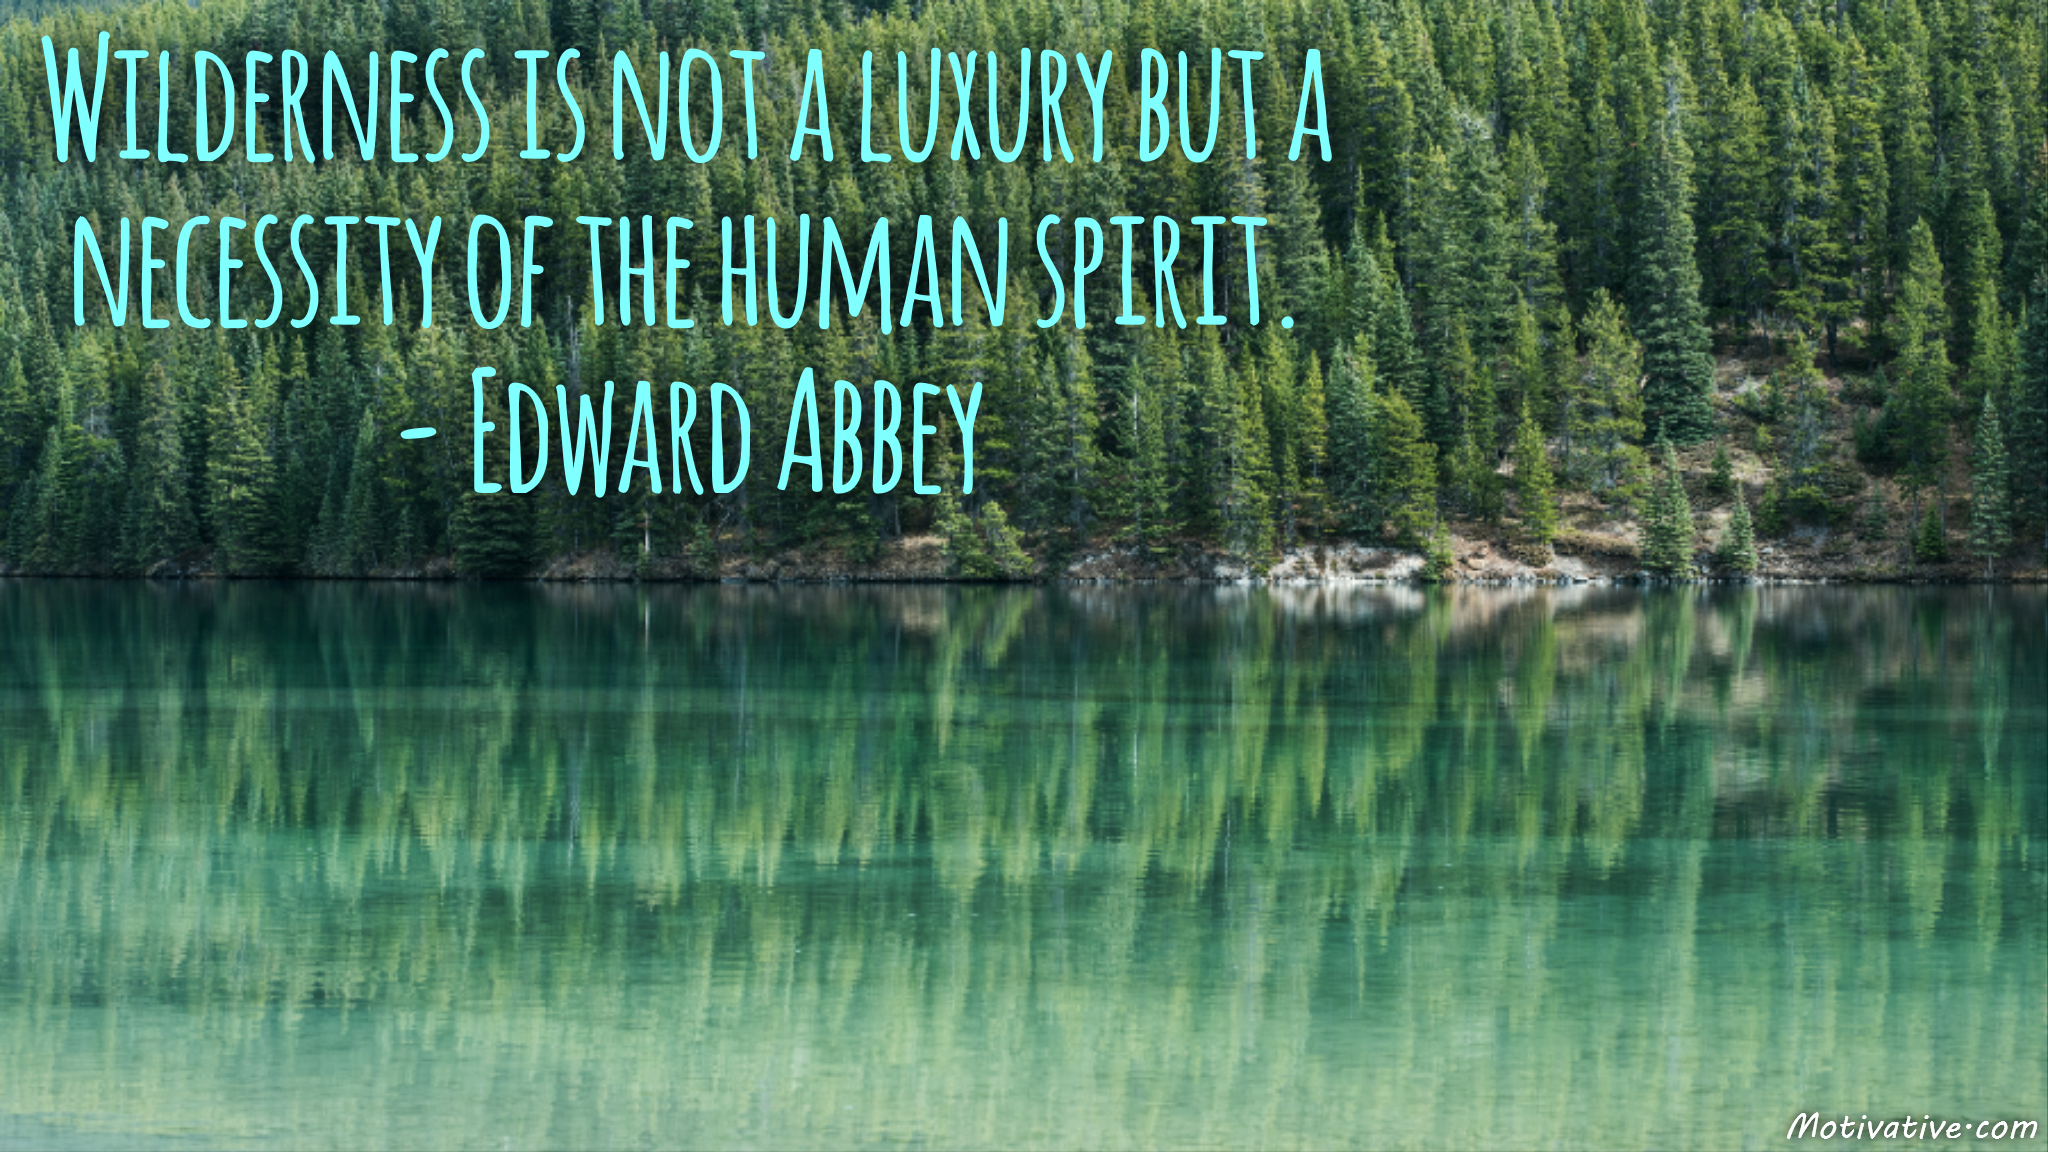 Wilderness is not a luxury but a necessity of the human spirit. – Edward Abbey